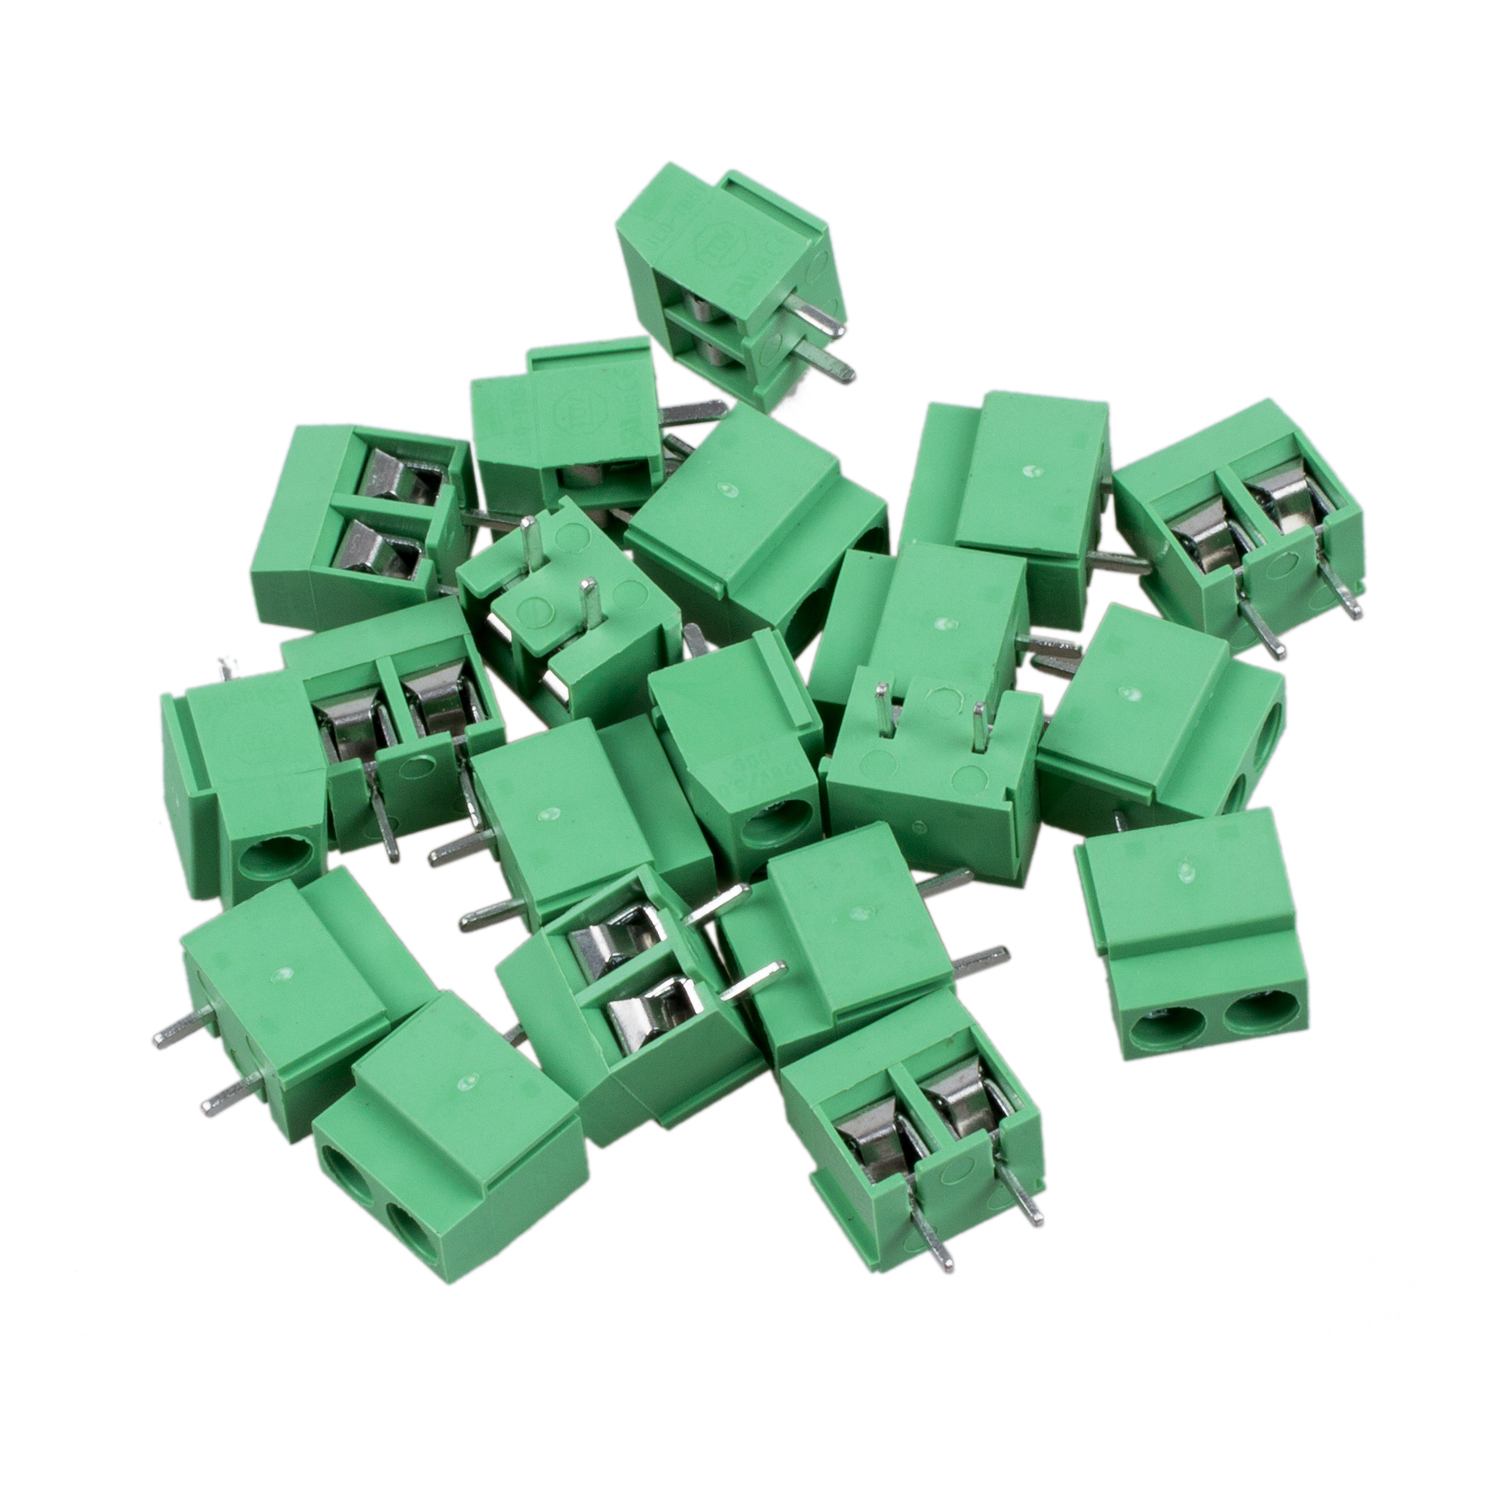 20Pcs 2 Pole 5mm Pitch PCB Mount Screw Terminal Block 8A 250V dynacord dynacord d 8a